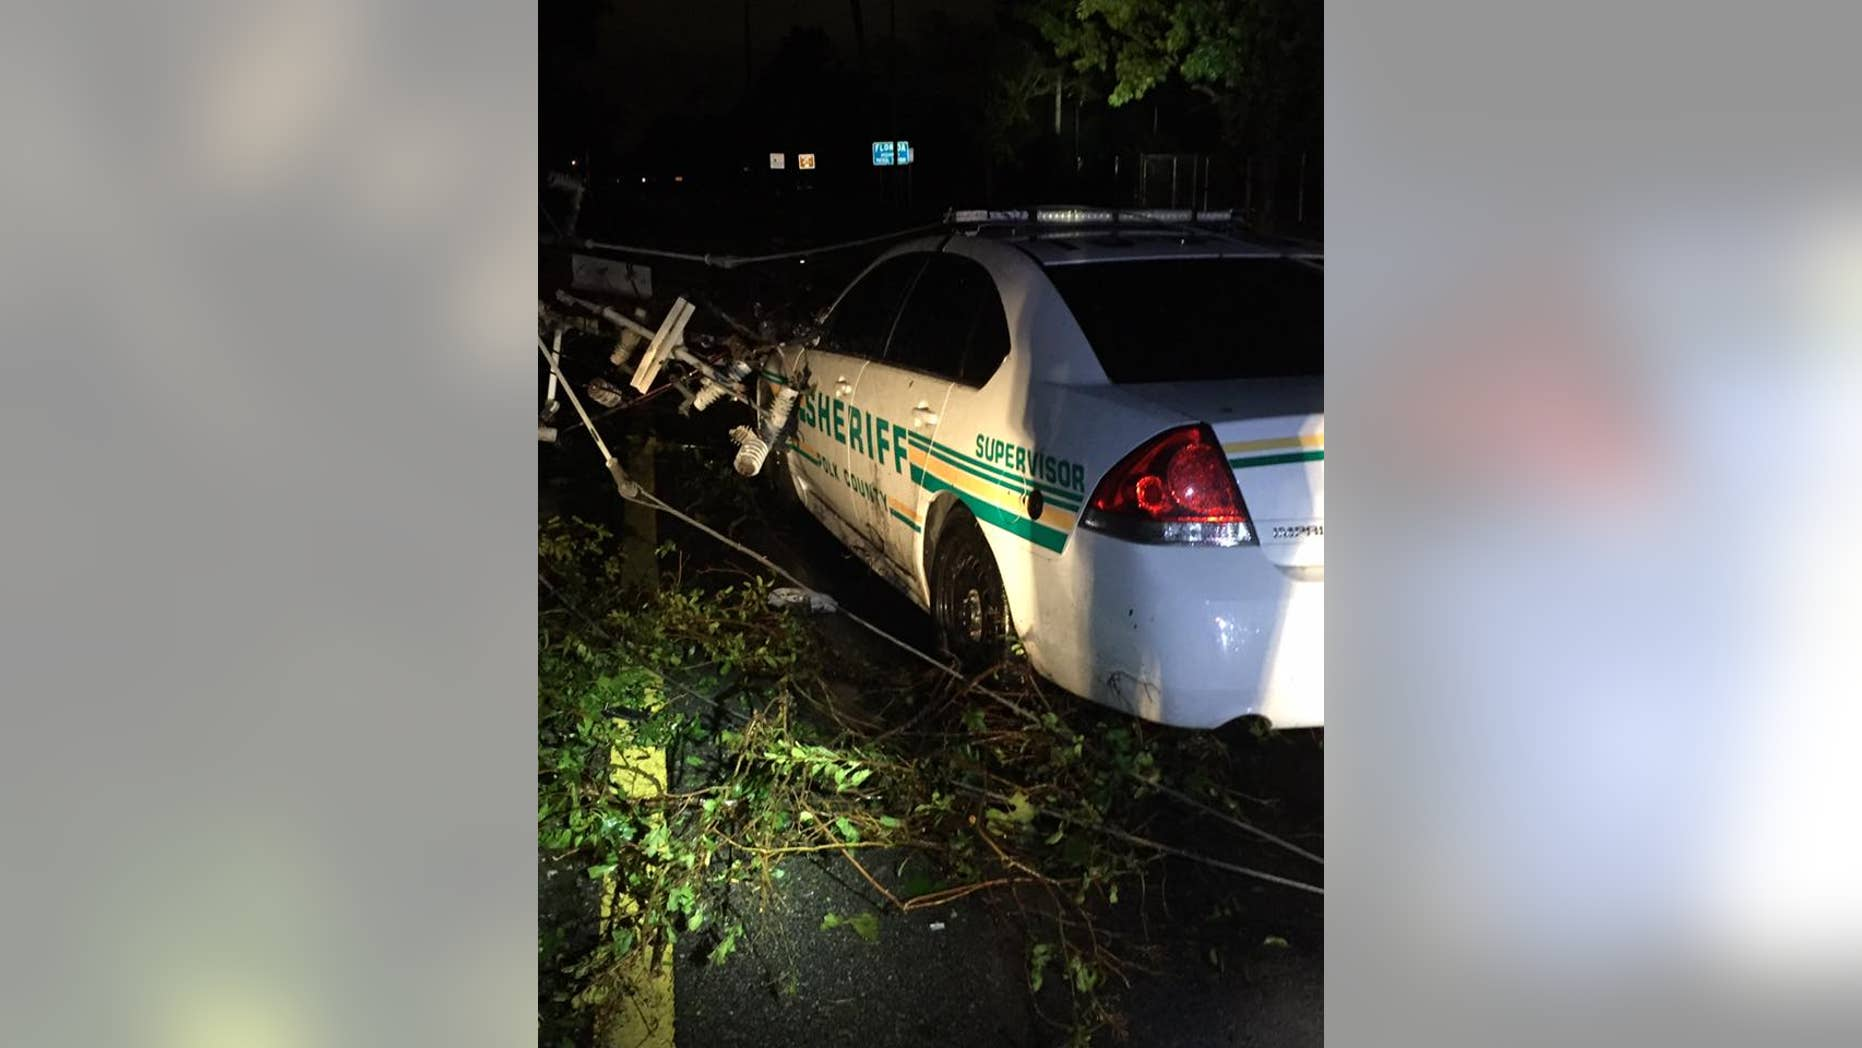 Two Florida first responders were rescued early Monday morning after being trapped in their car.